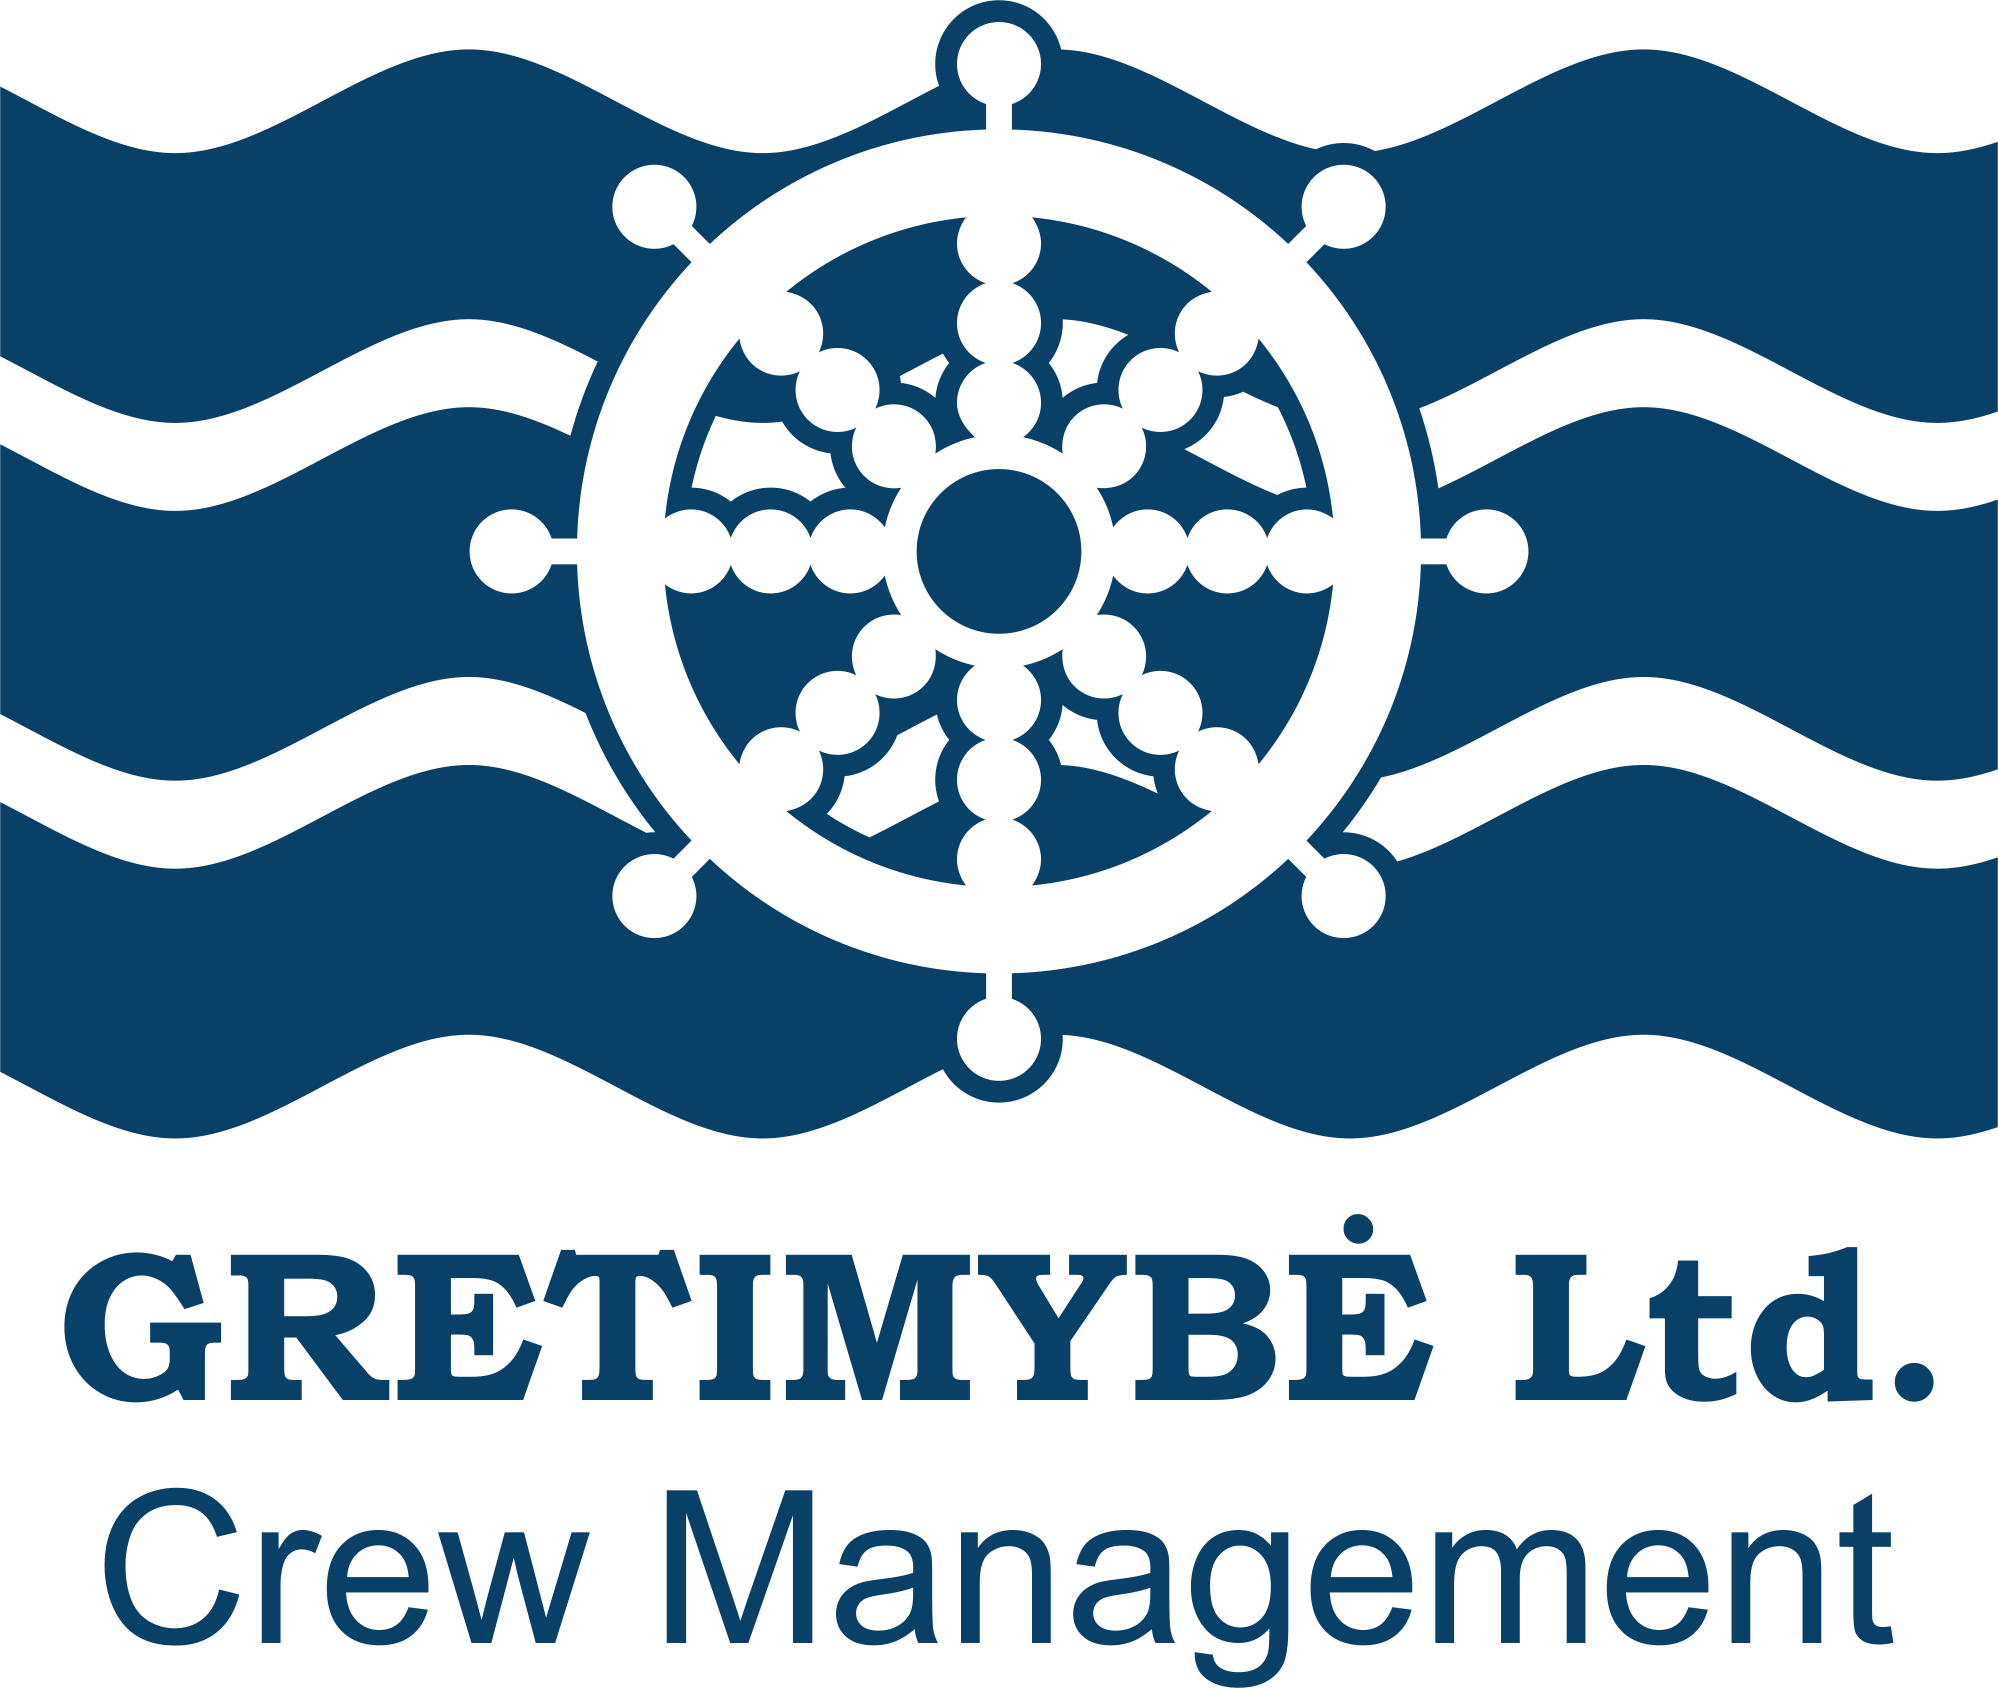 Crew management company in Lithuania.